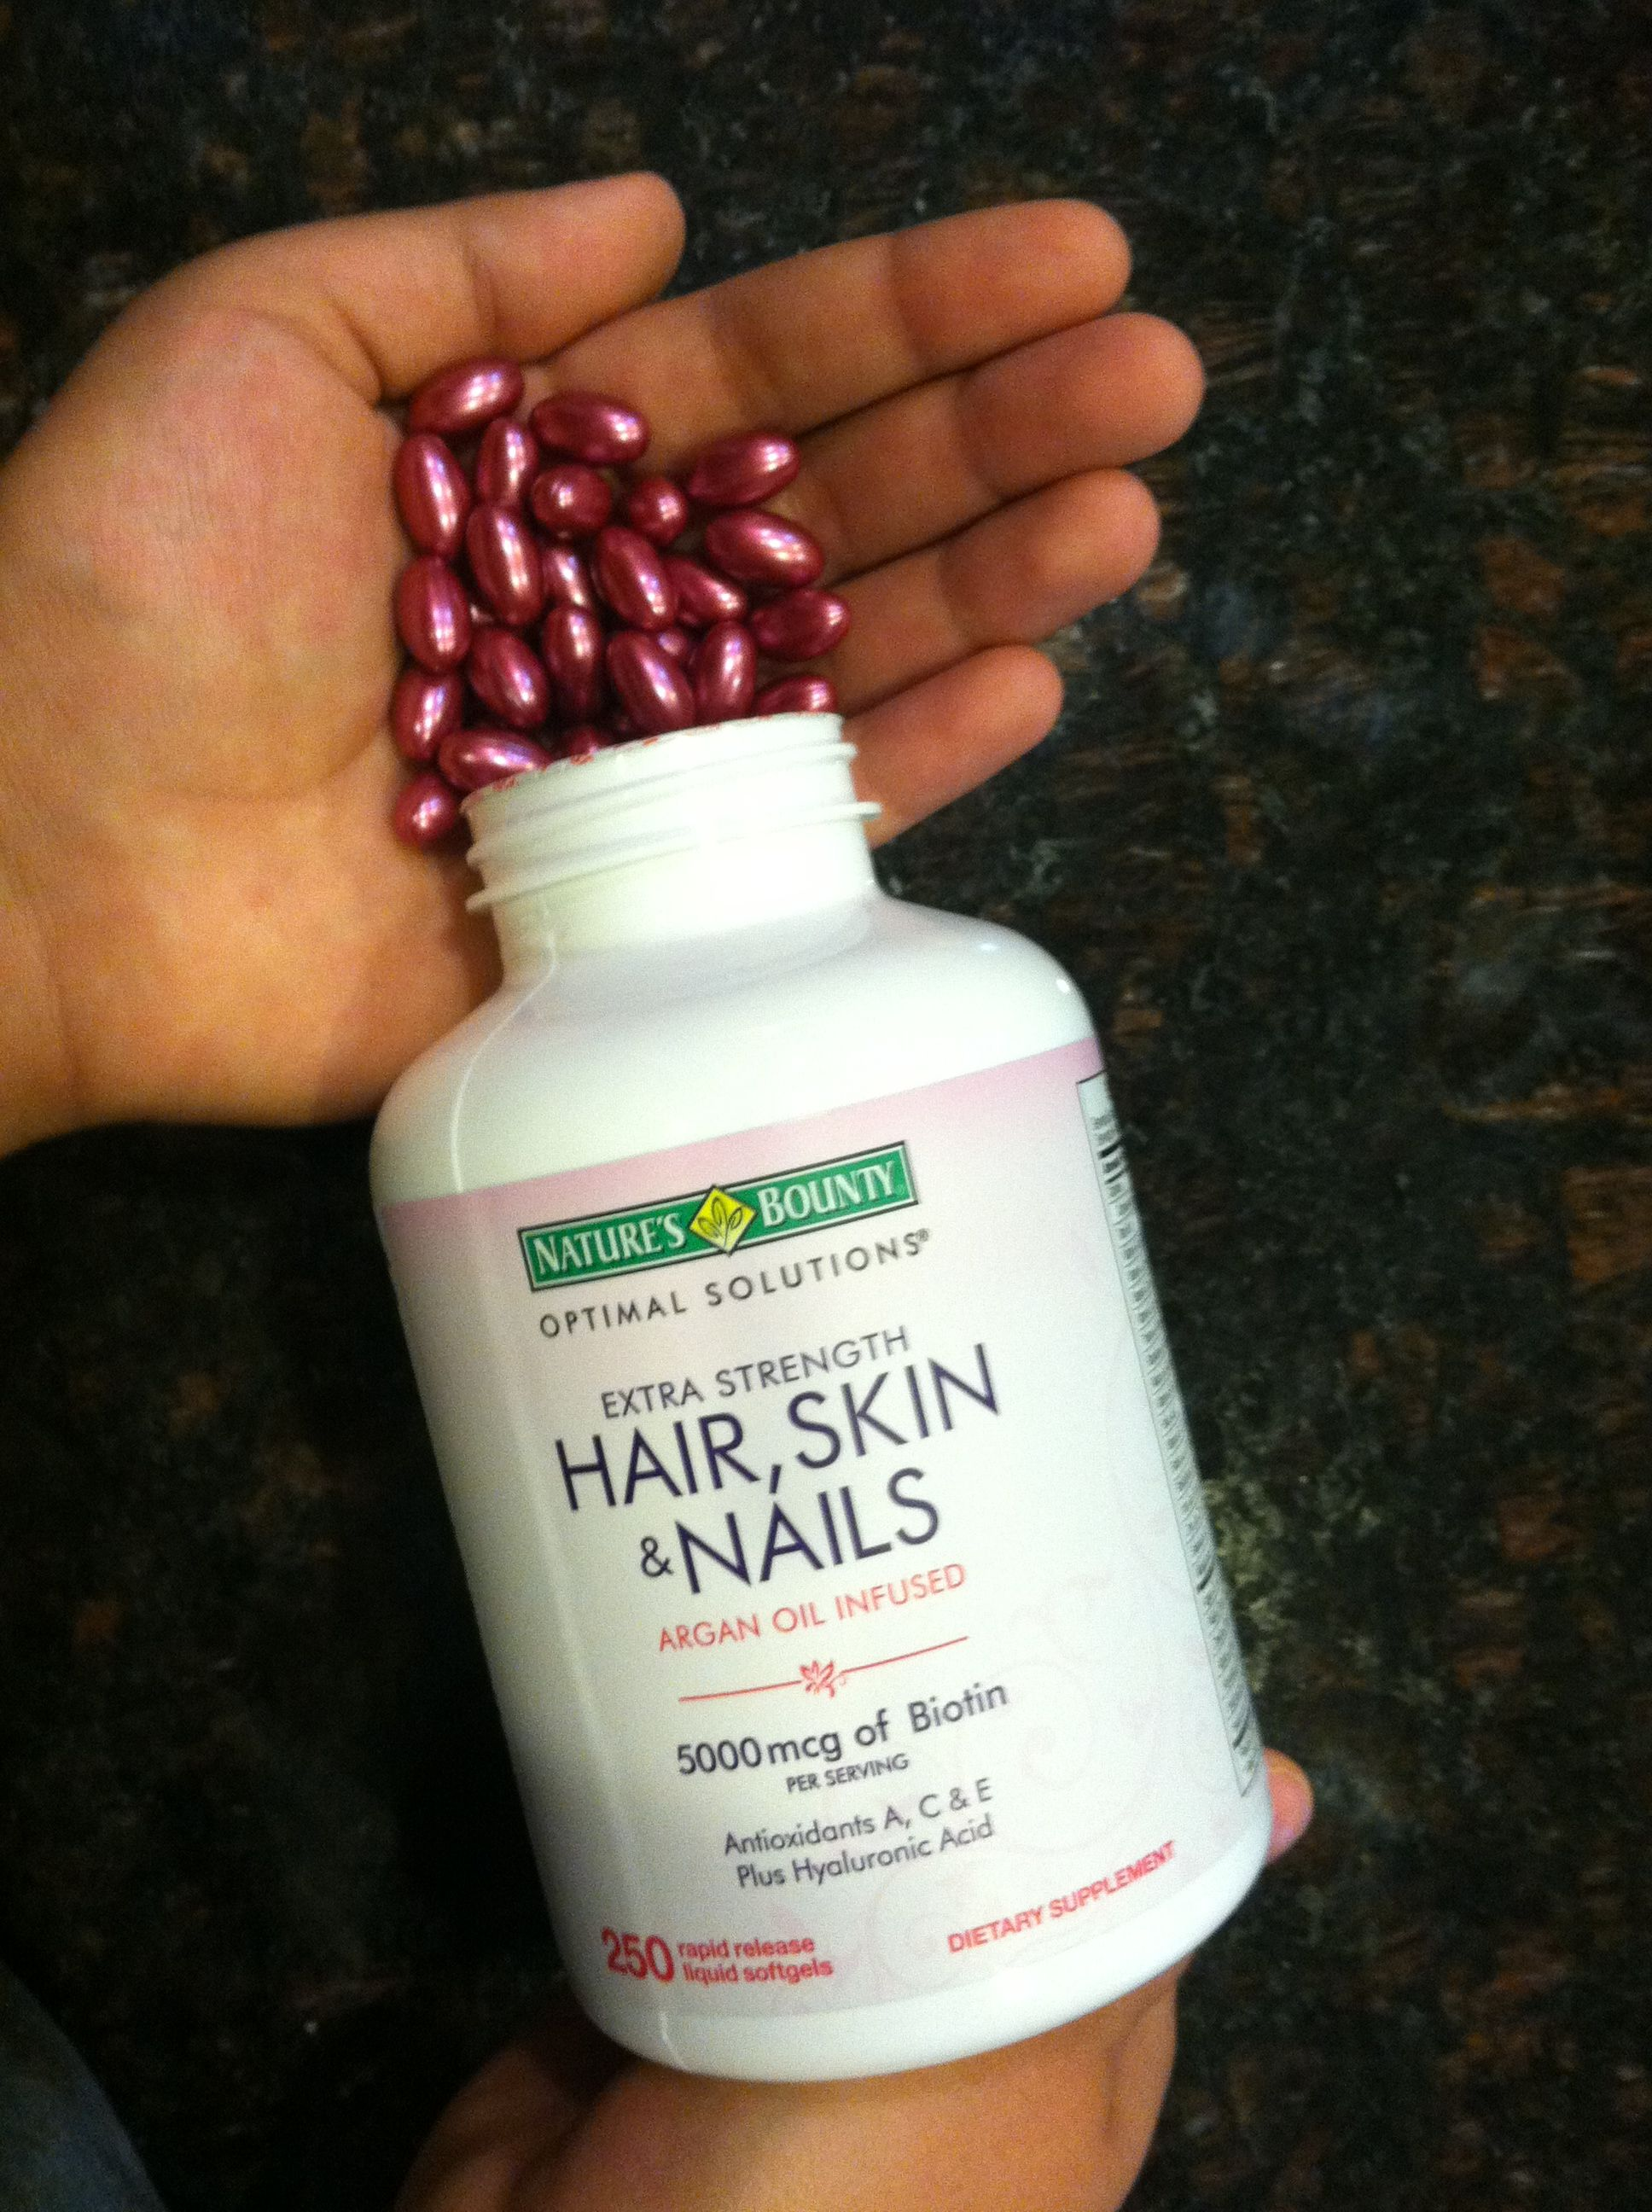 Nature's Bounty Hair Skin And Nails Costco : nature's, bounty, nails, costco, Vitamin, Strengthens, Nails, Works, Great!, These, Costco., Color, Soooo, Pre…, Nails,, Beauty, Care,, Strengthening